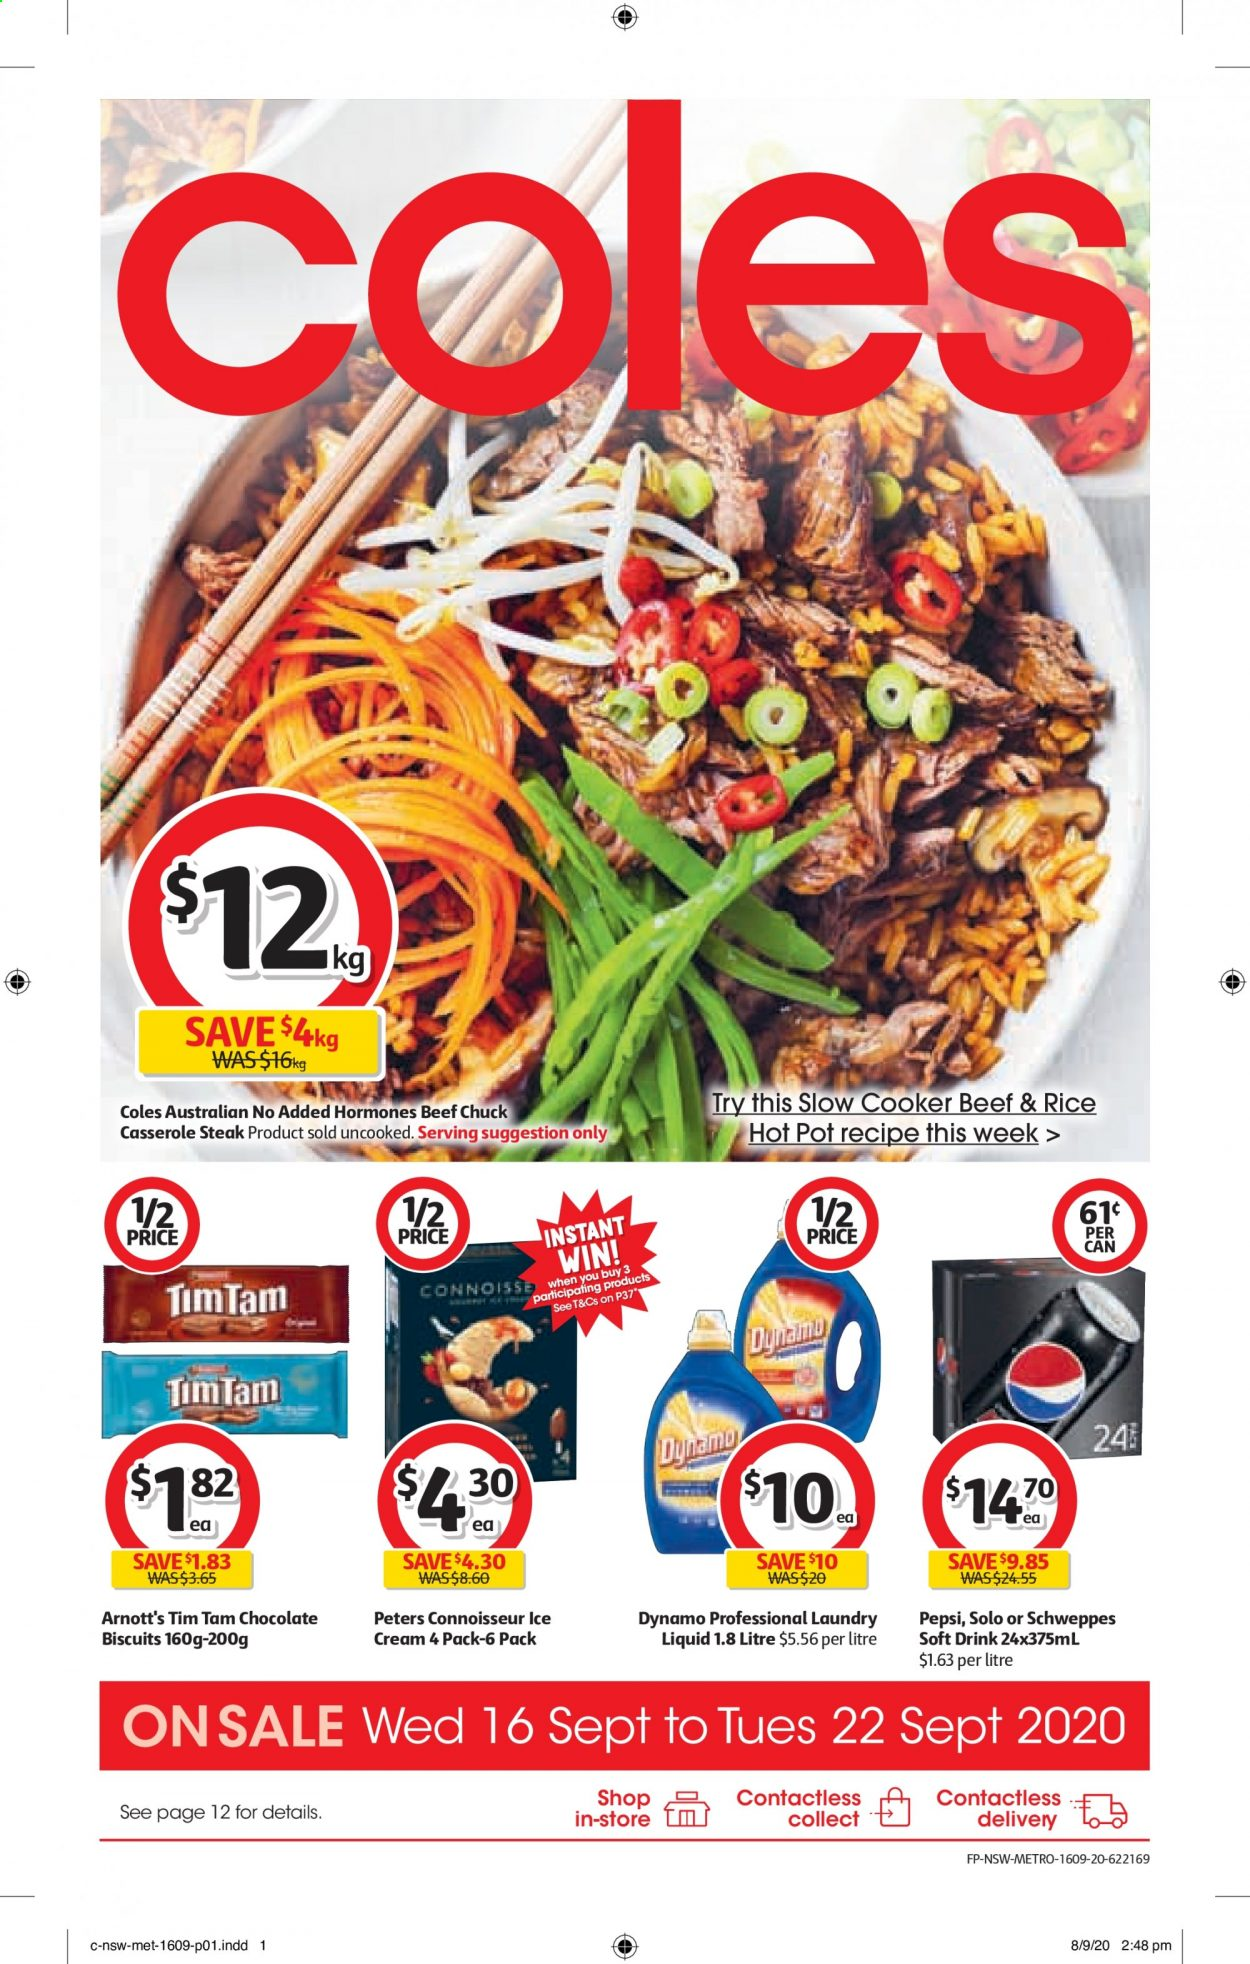 Coles Catalogue - 16.9.2020 - 22.9.2020 - Sales products - beef meat, biscuits, cream, rice, schweppes, slow cooker, pot, pepsi, chocolate, steak, casserole, drink, liquid, soft drink, metro. Page 1.